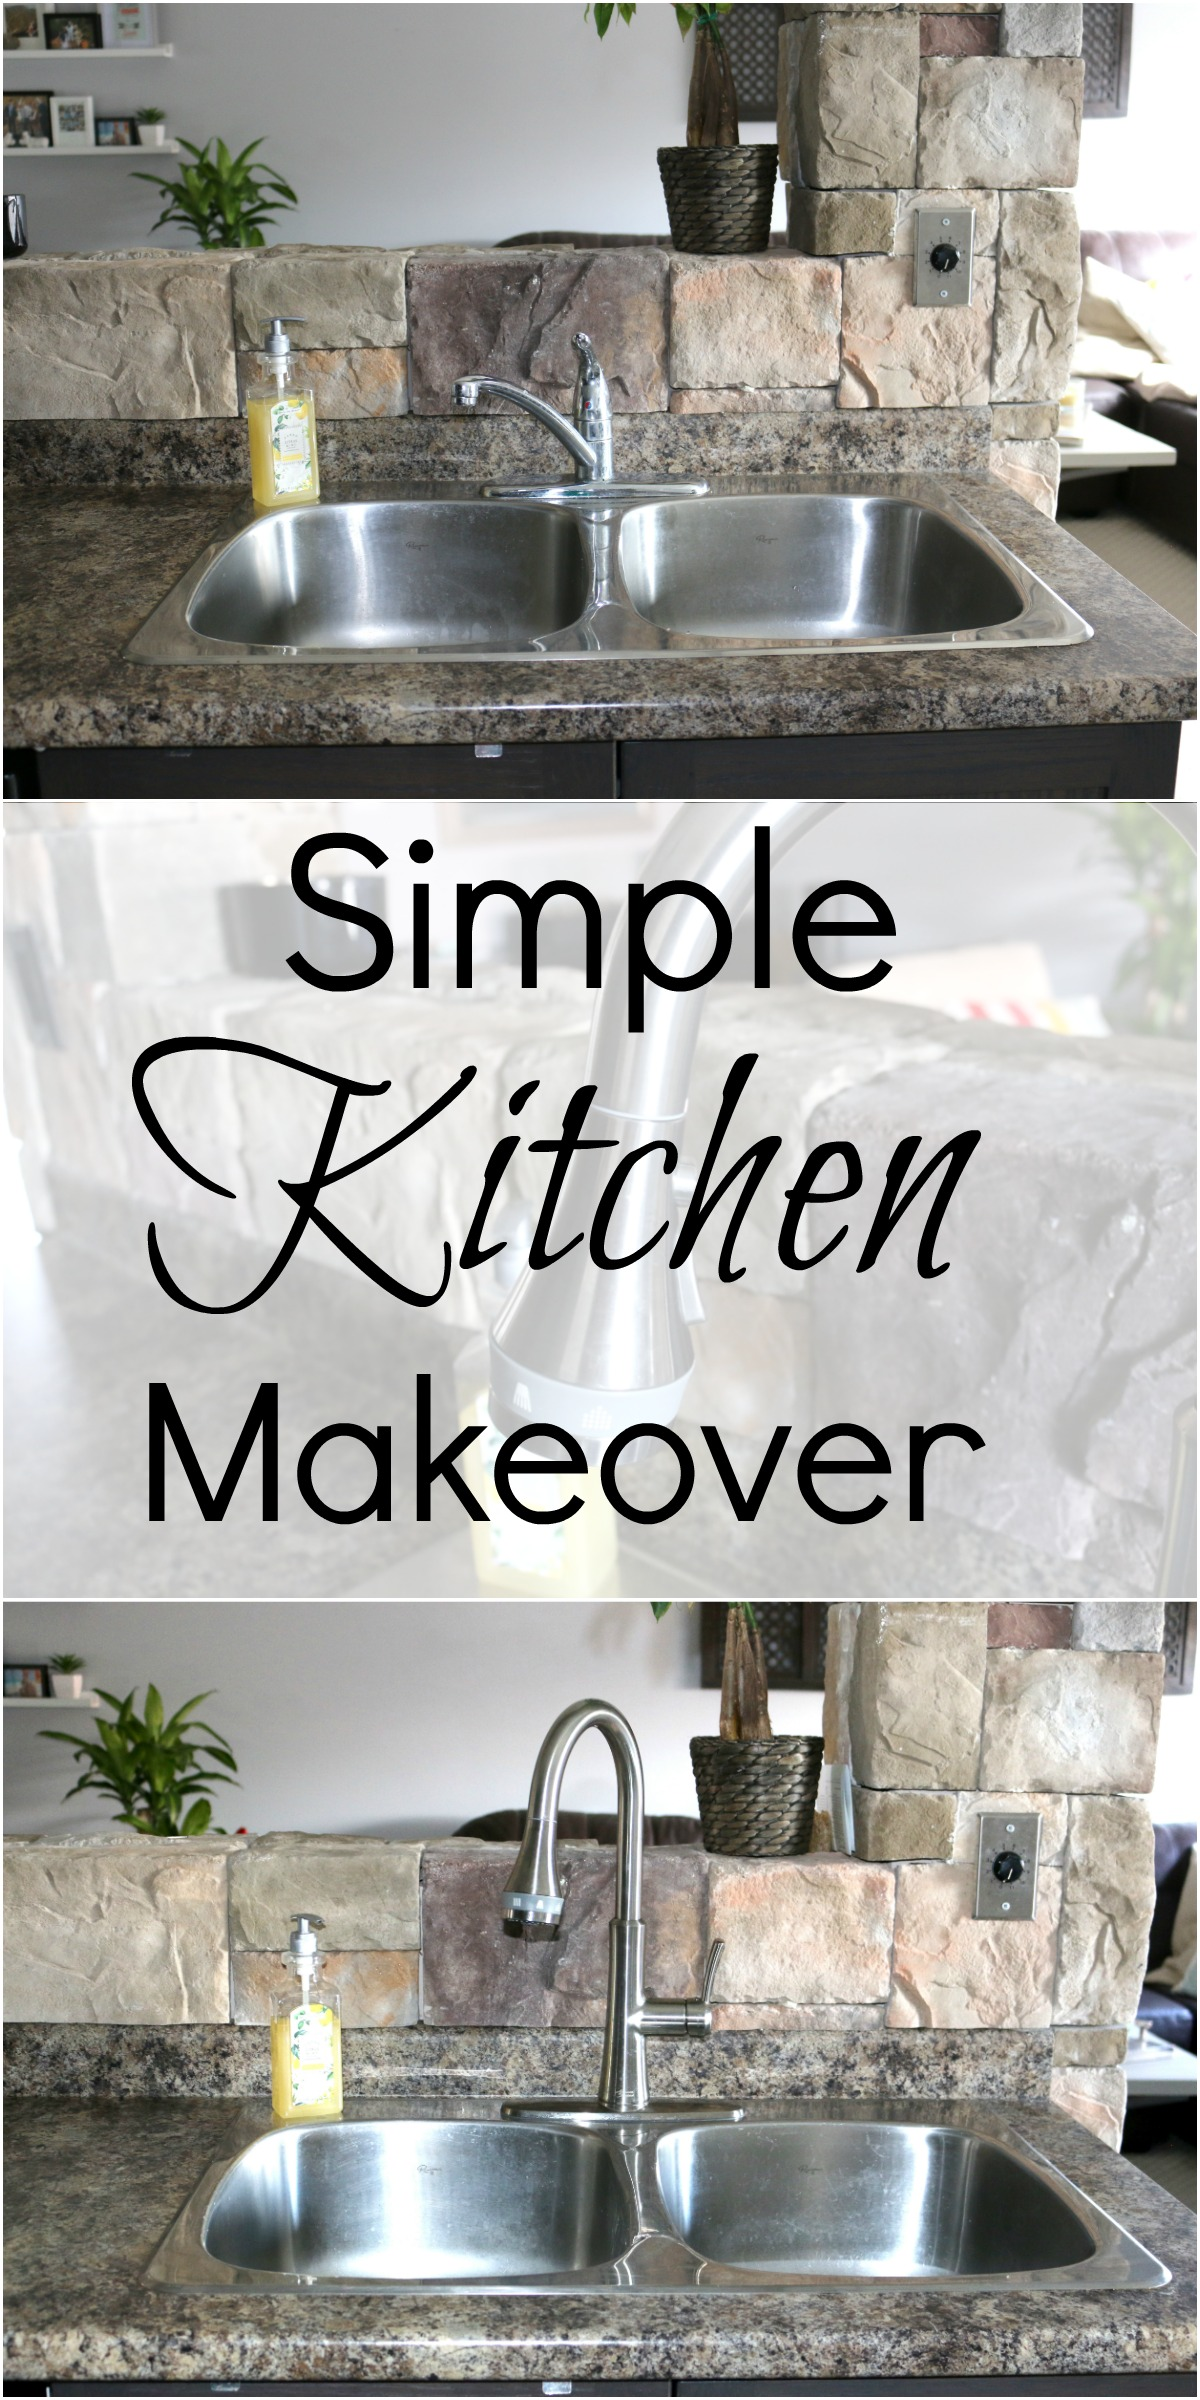 Simple Kitchen Makeover